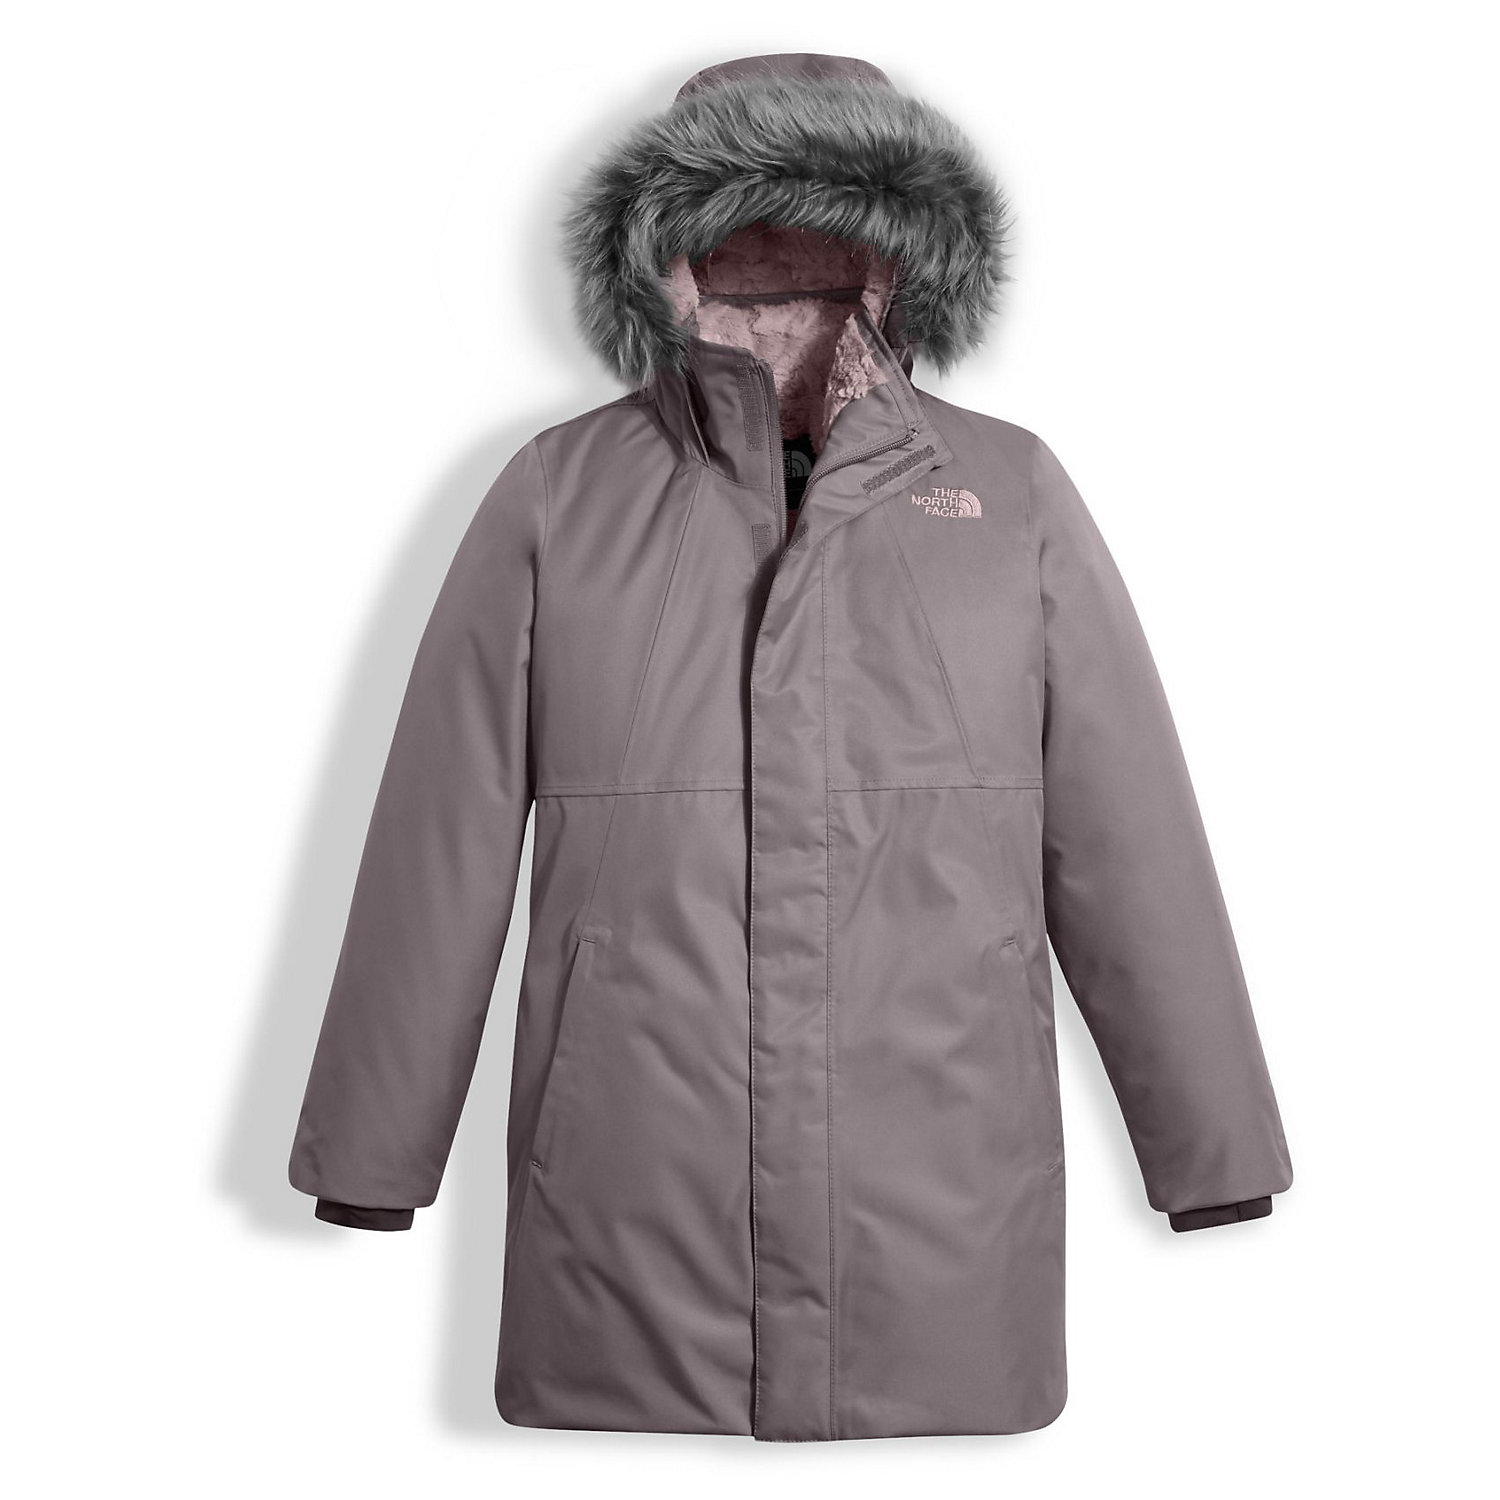 9ec187564 The North Face Girls  Arctic Swirl Down Jacket - Moosejaw